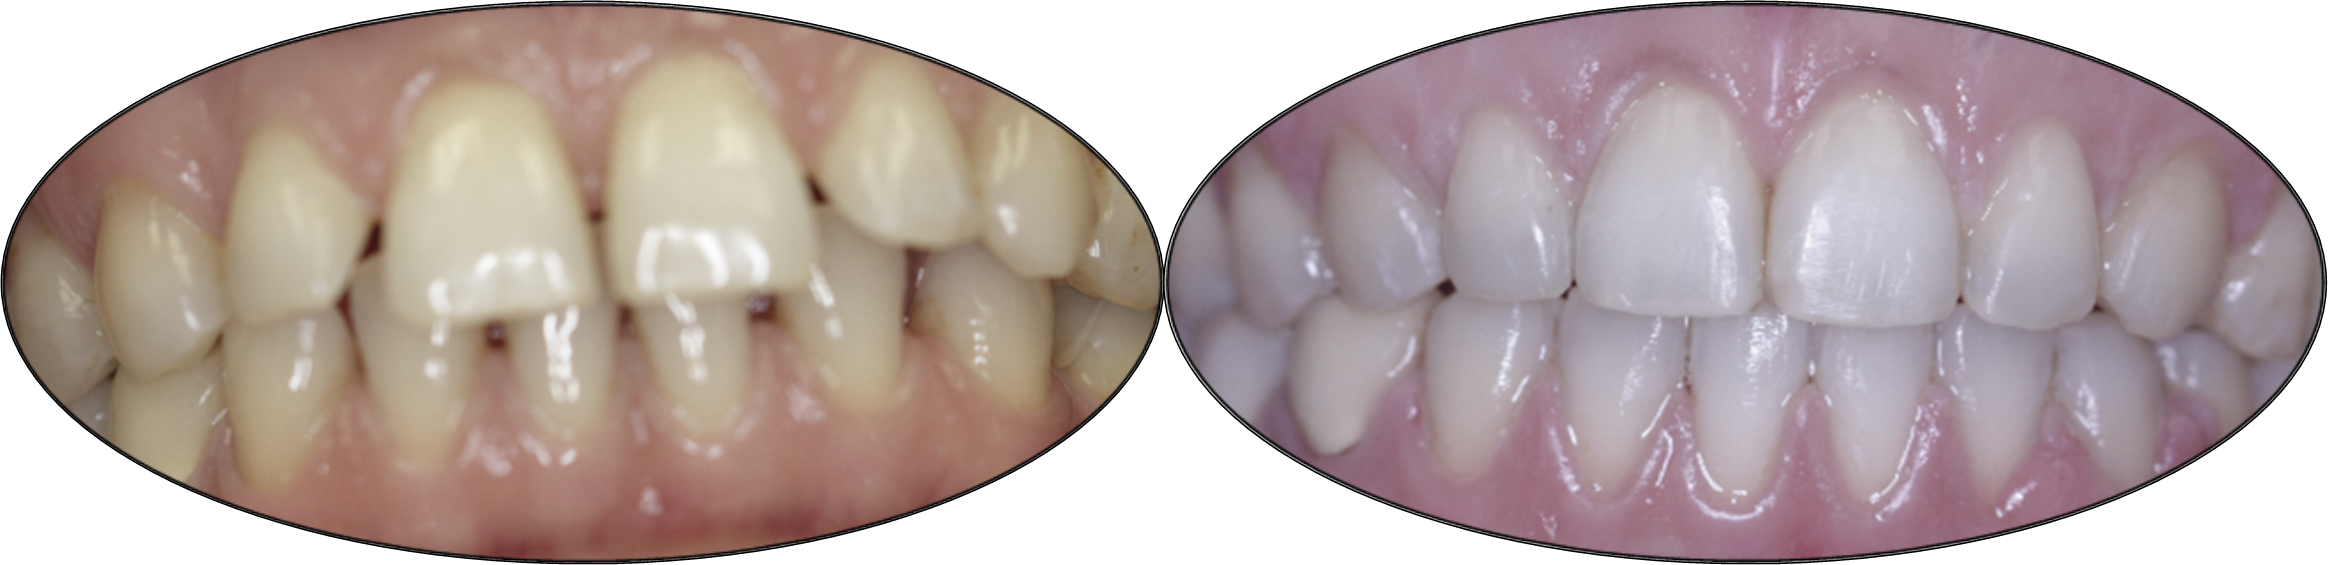 Smile gallery images, before and after orthodontics, patient four